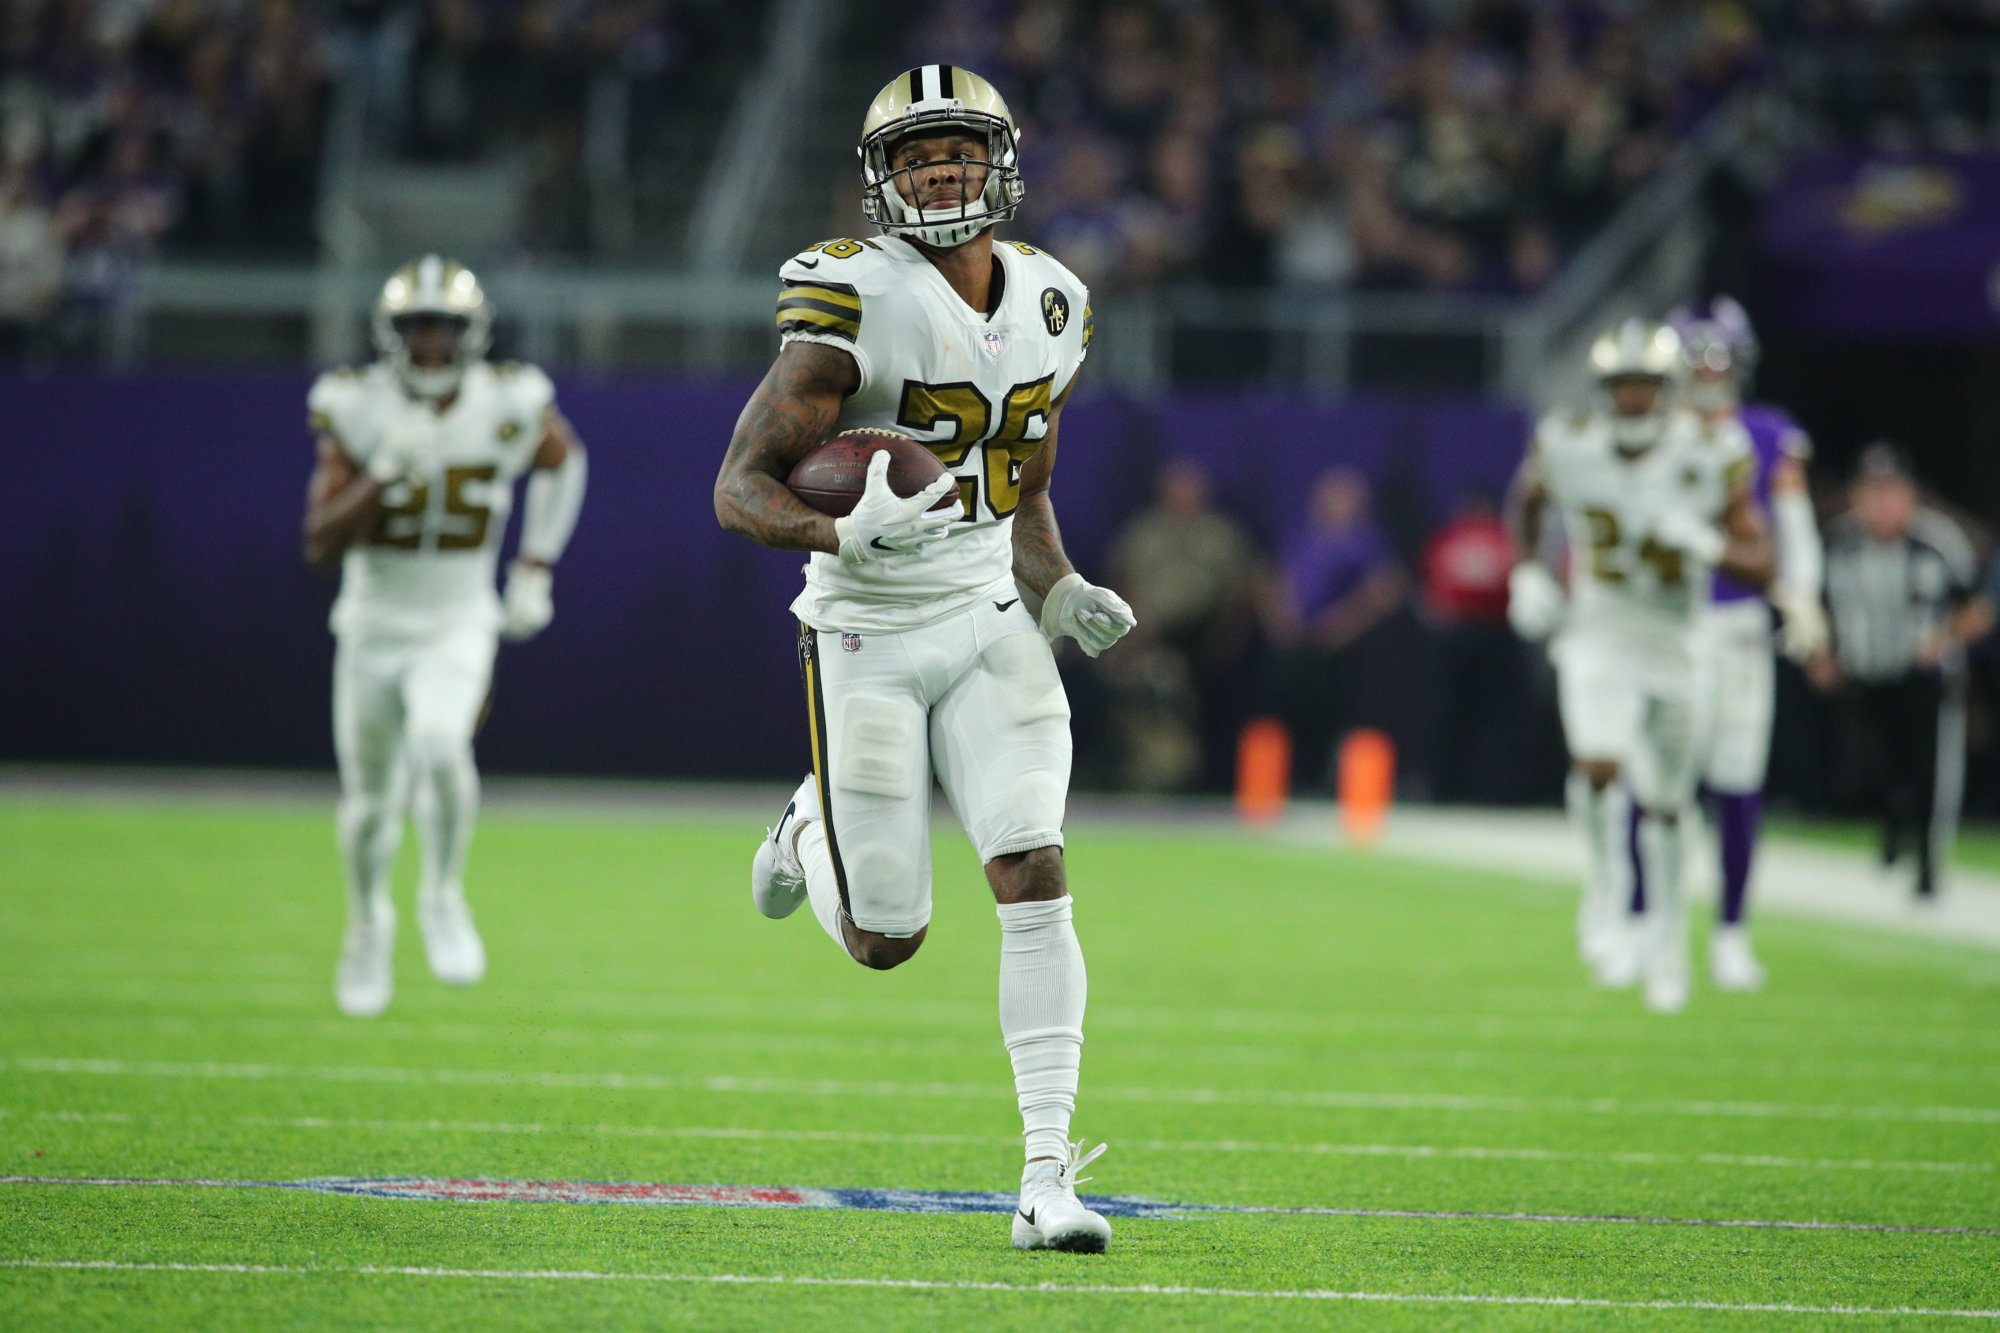 MINNEAPOLIS, MN - OCTOBER 28: P.J. Williams #26  of the New Orleans Saints carries the ball for a 45 yard touchdown after intercepting Kirk Cousins #8 of the Minnesota Vikings in the third quarter of the game at U.S. Bank Stadium on October 28, 2018 in Minneapolis, Minnesota. (Photo by Adam Bettcher/Getty Images)